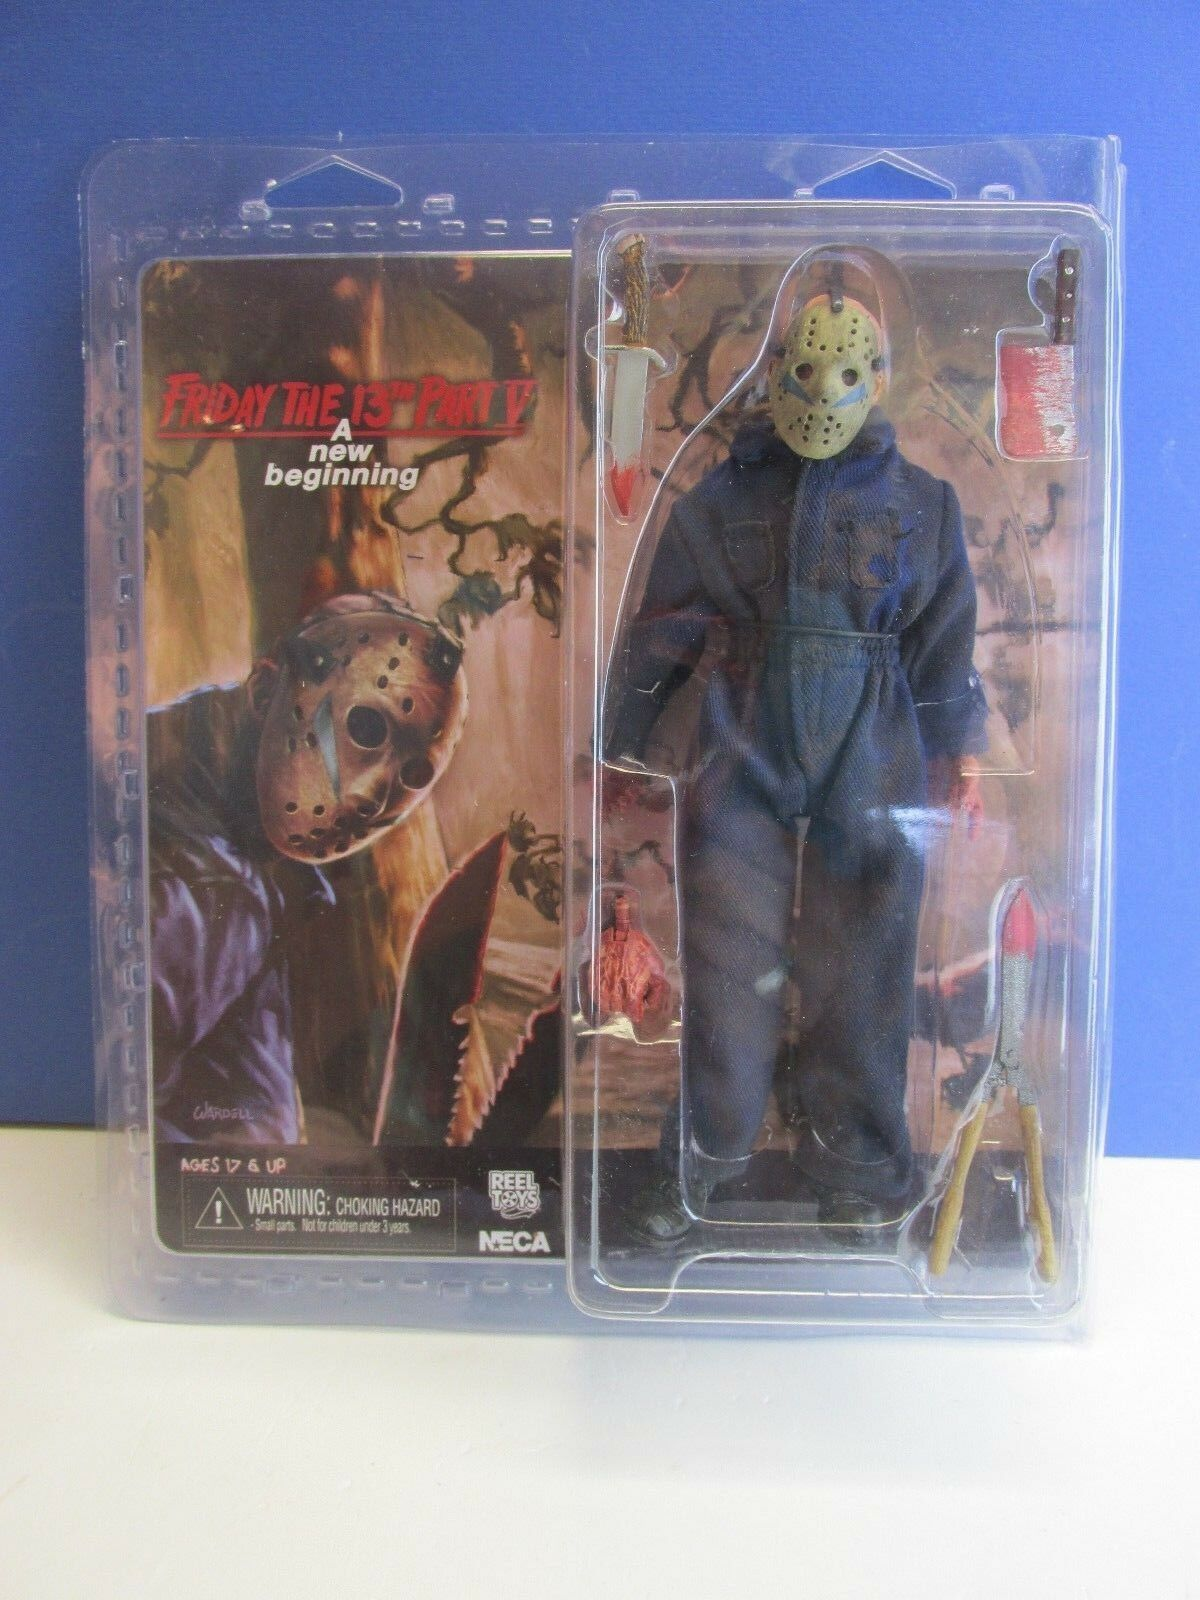 FRIDAY THE 13TH part v new beginning JASON VOORHEES ACTION FIGURE neca 8